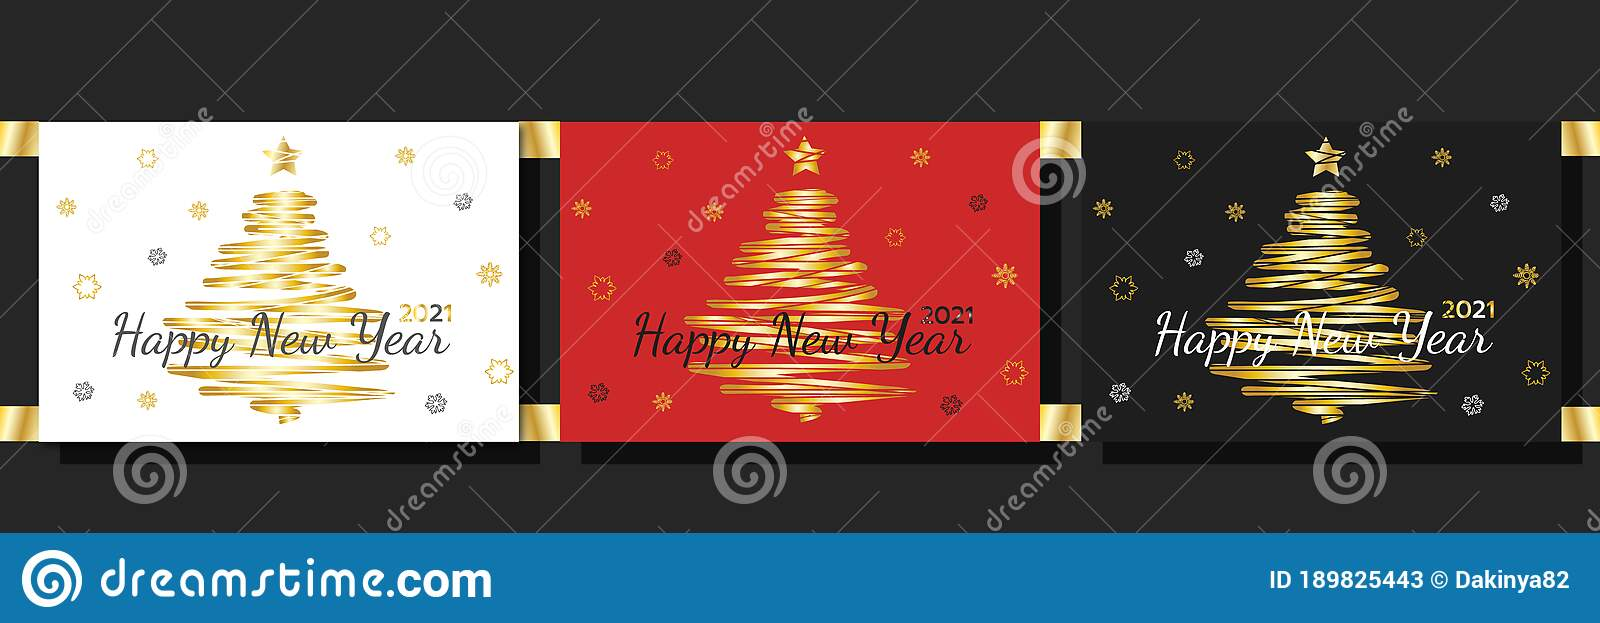 2021 Happy New Year White, Red And Black Greeting Cards ...